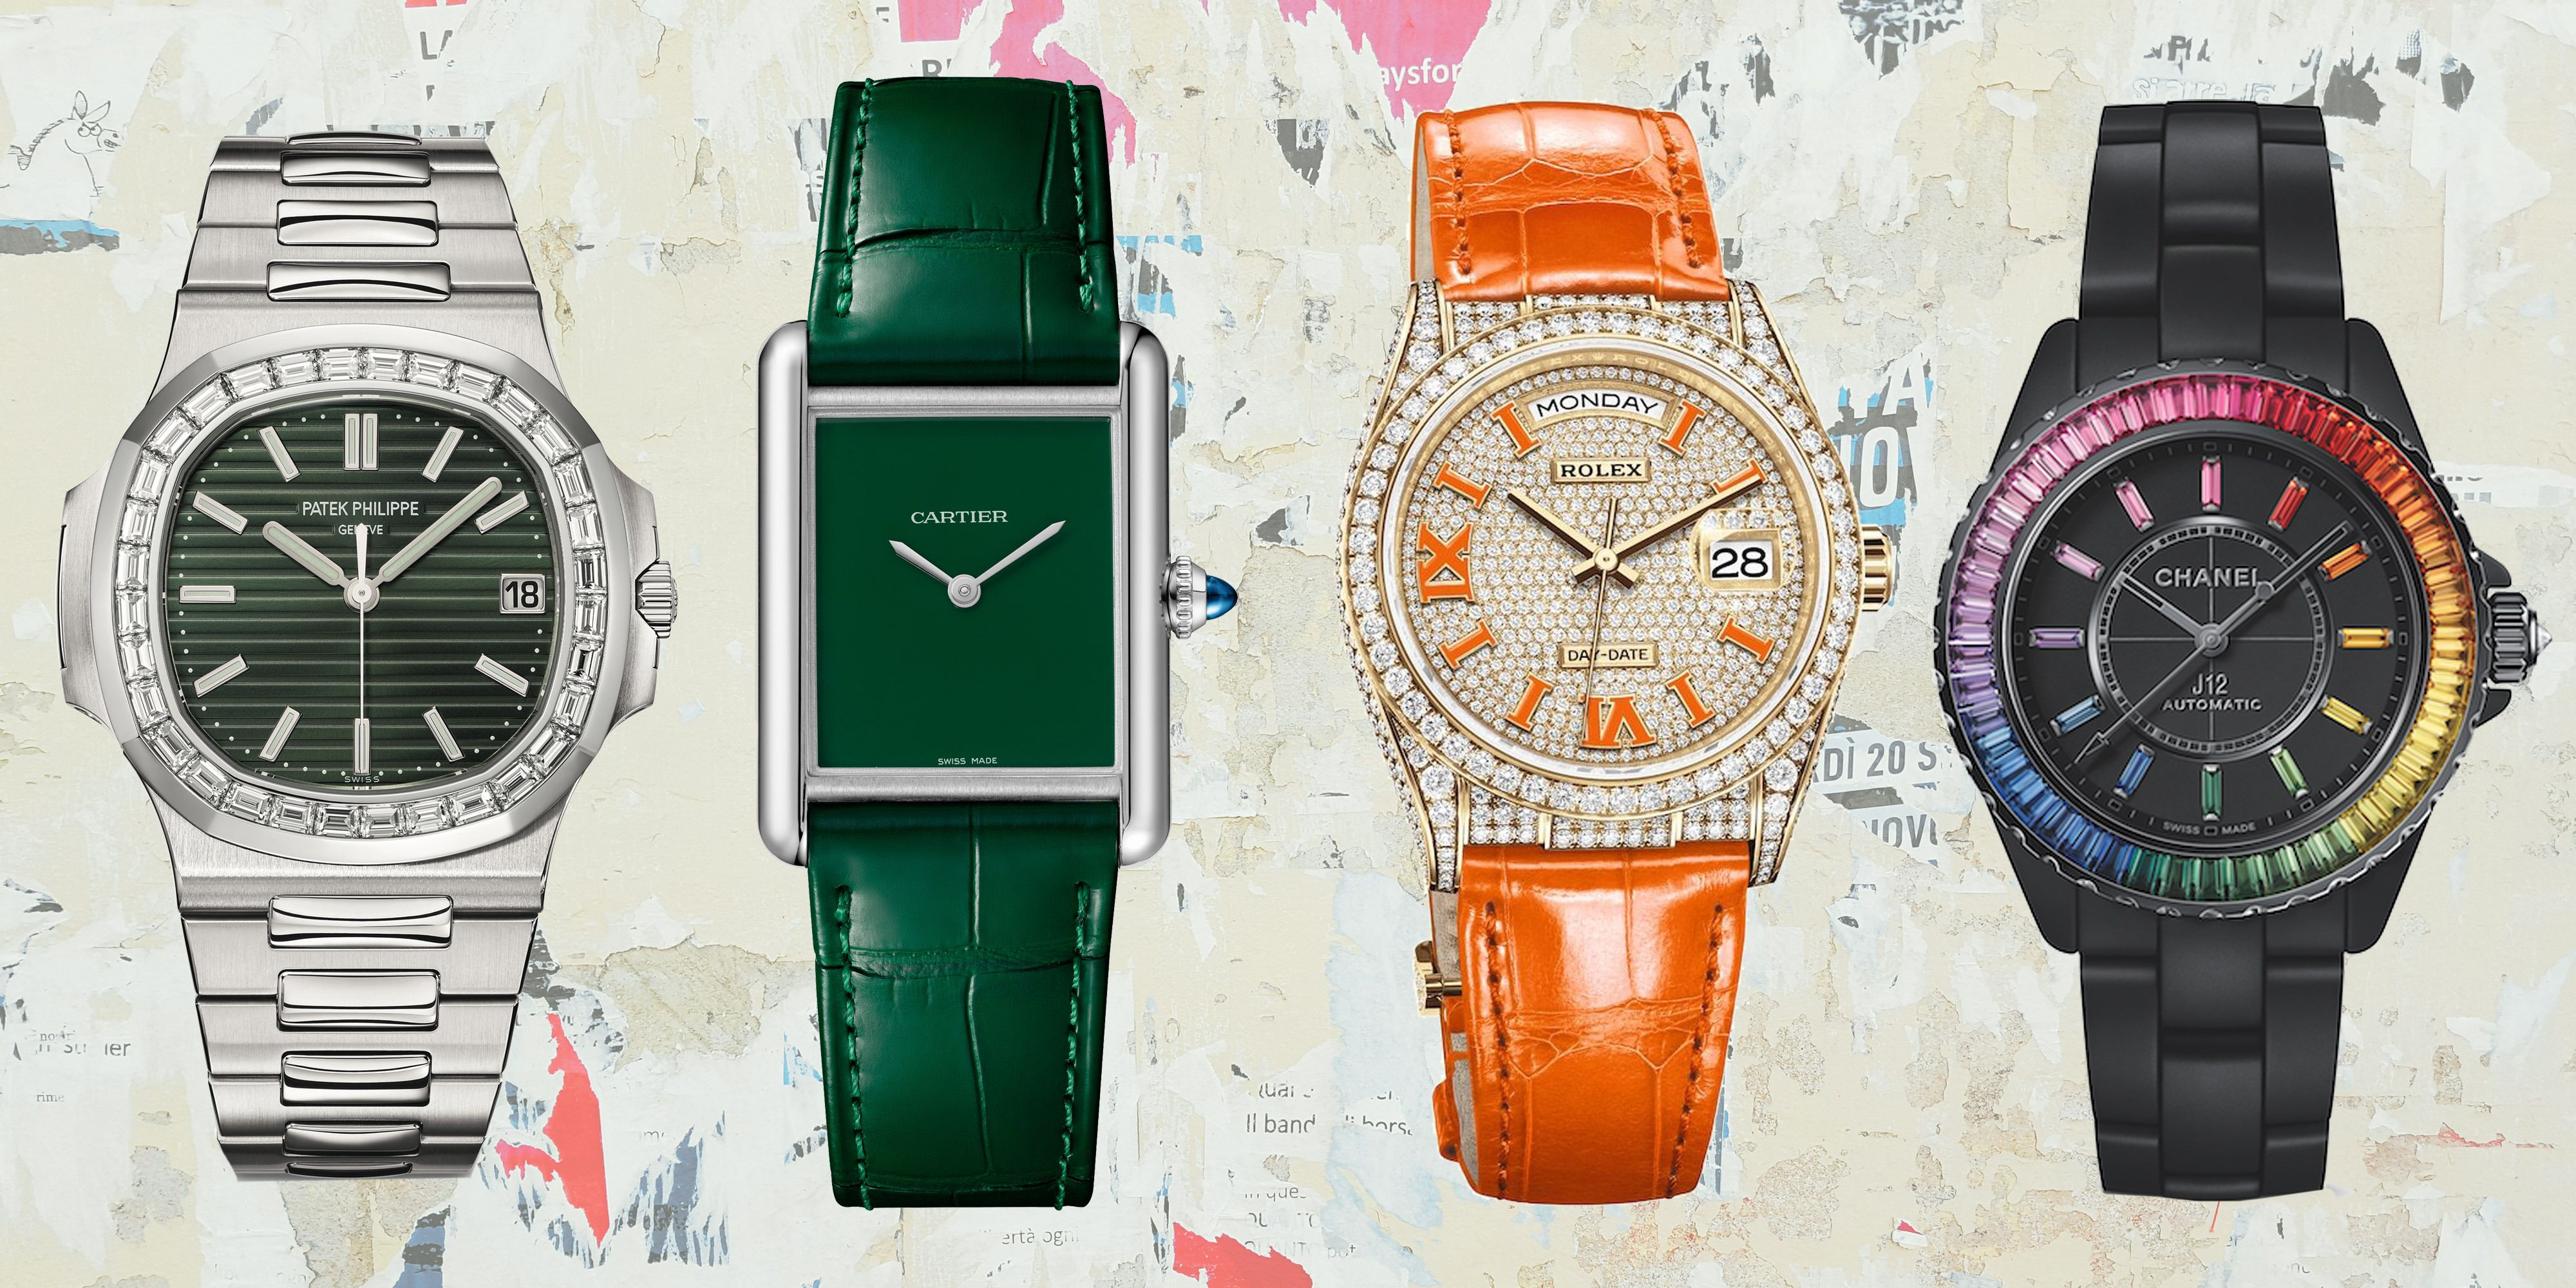 The Best Watches Seen at Watches & Wonders 2021